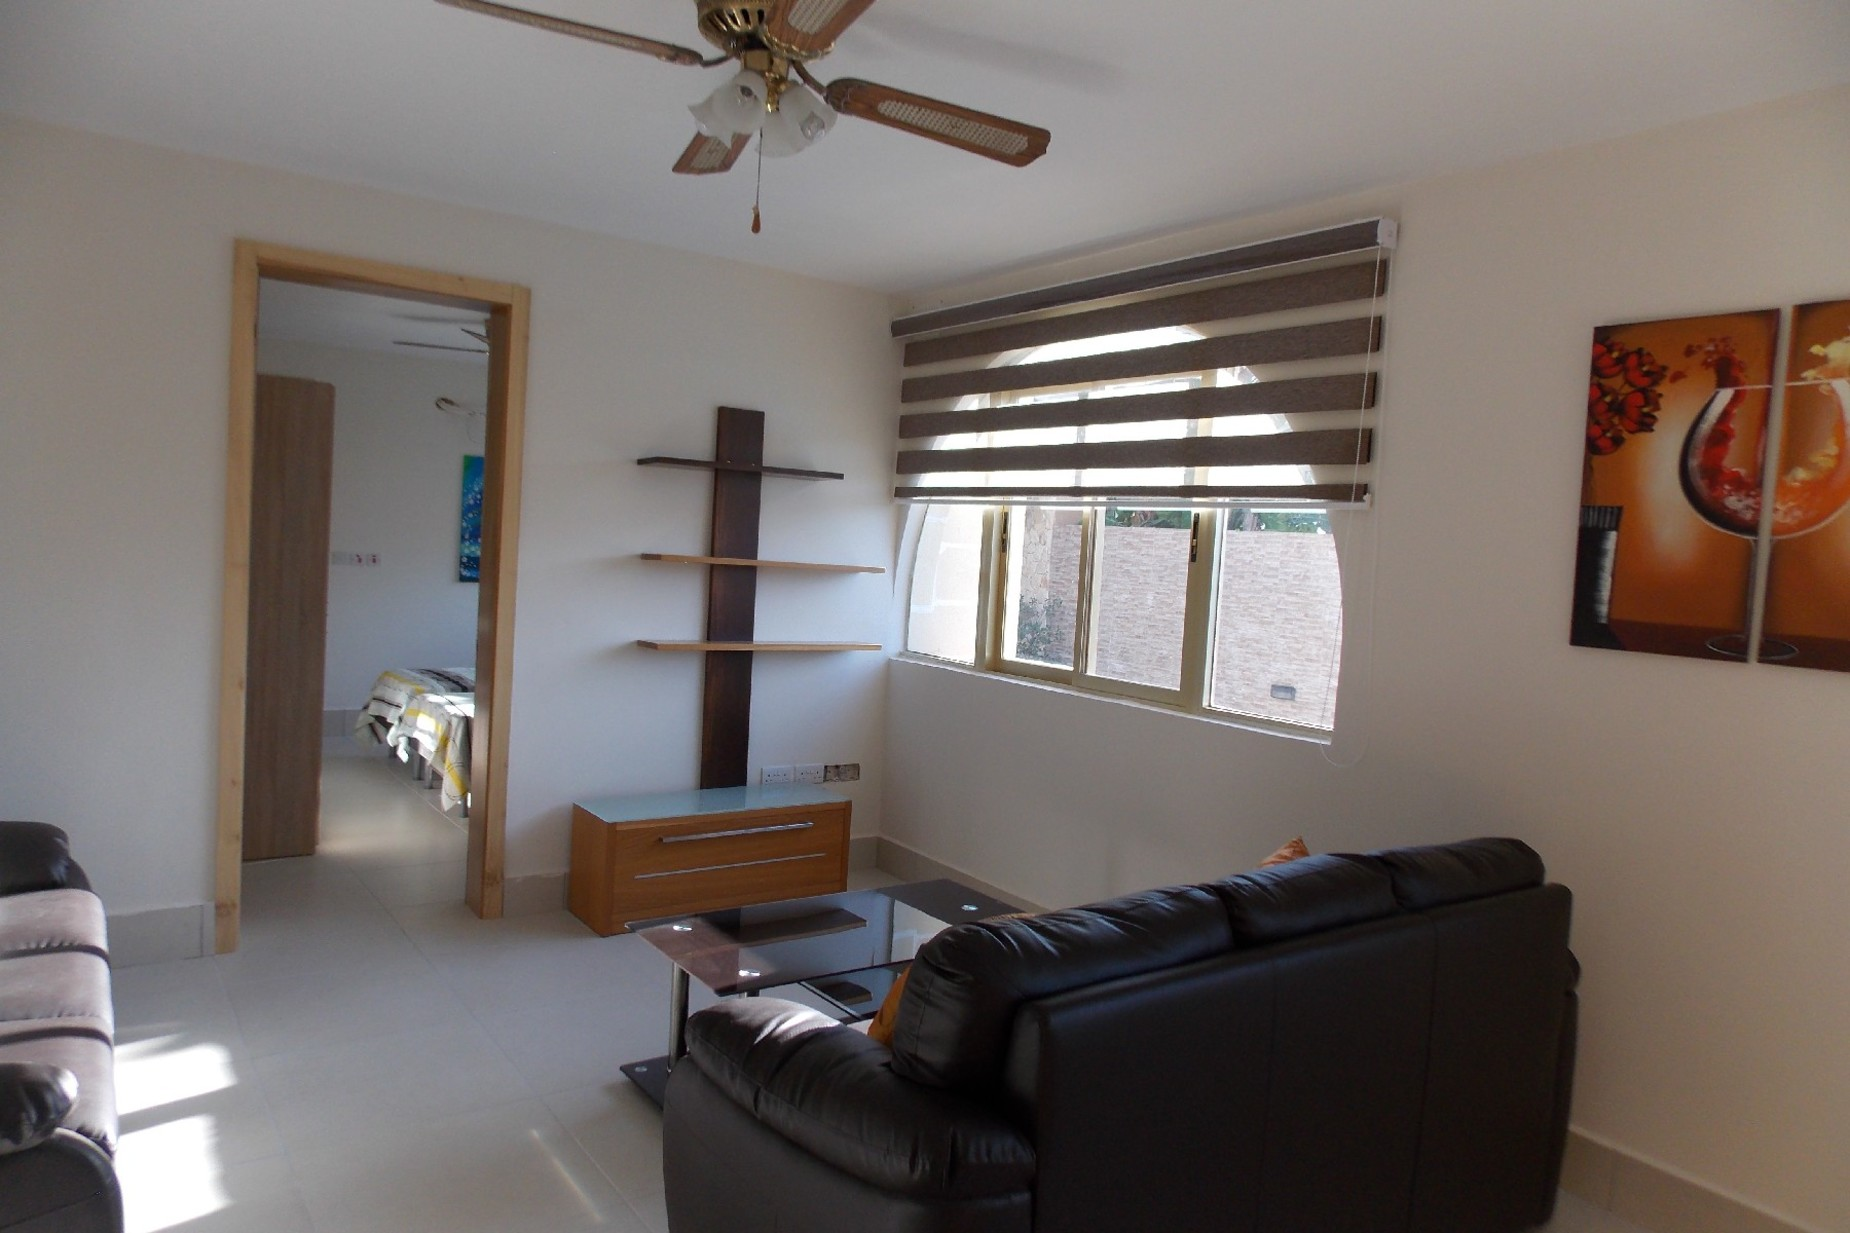 3 bed Apartment For Rent in Mellieha, Mellieha - thumb 4